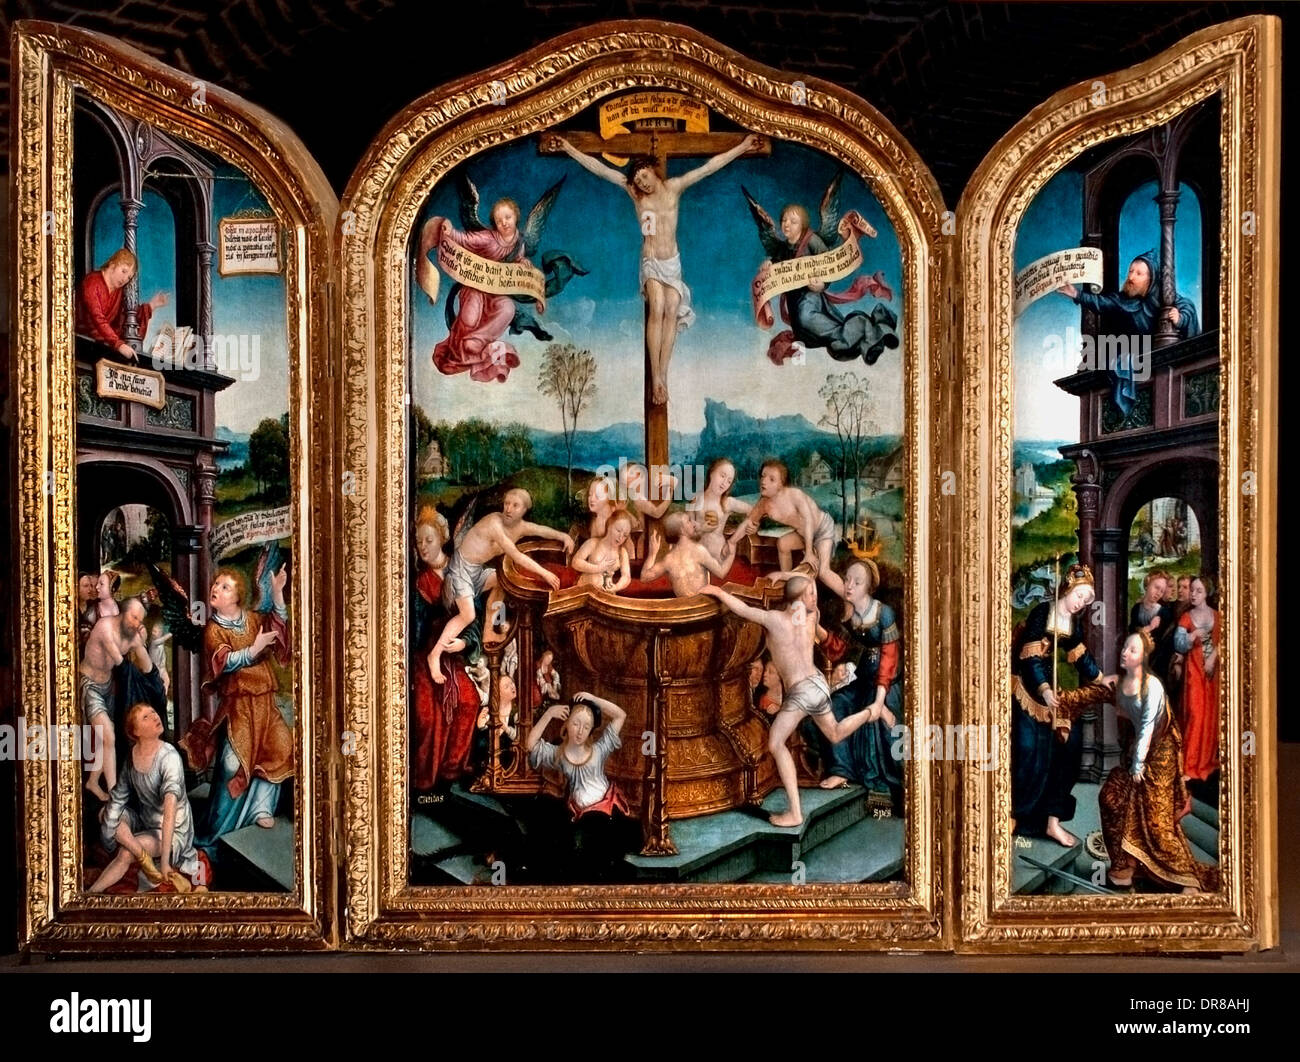 Triptyque du Bain mystique - Triptych of the Mystical Bath - Jean Bellegambe 1470-1534 France French - Stock Image